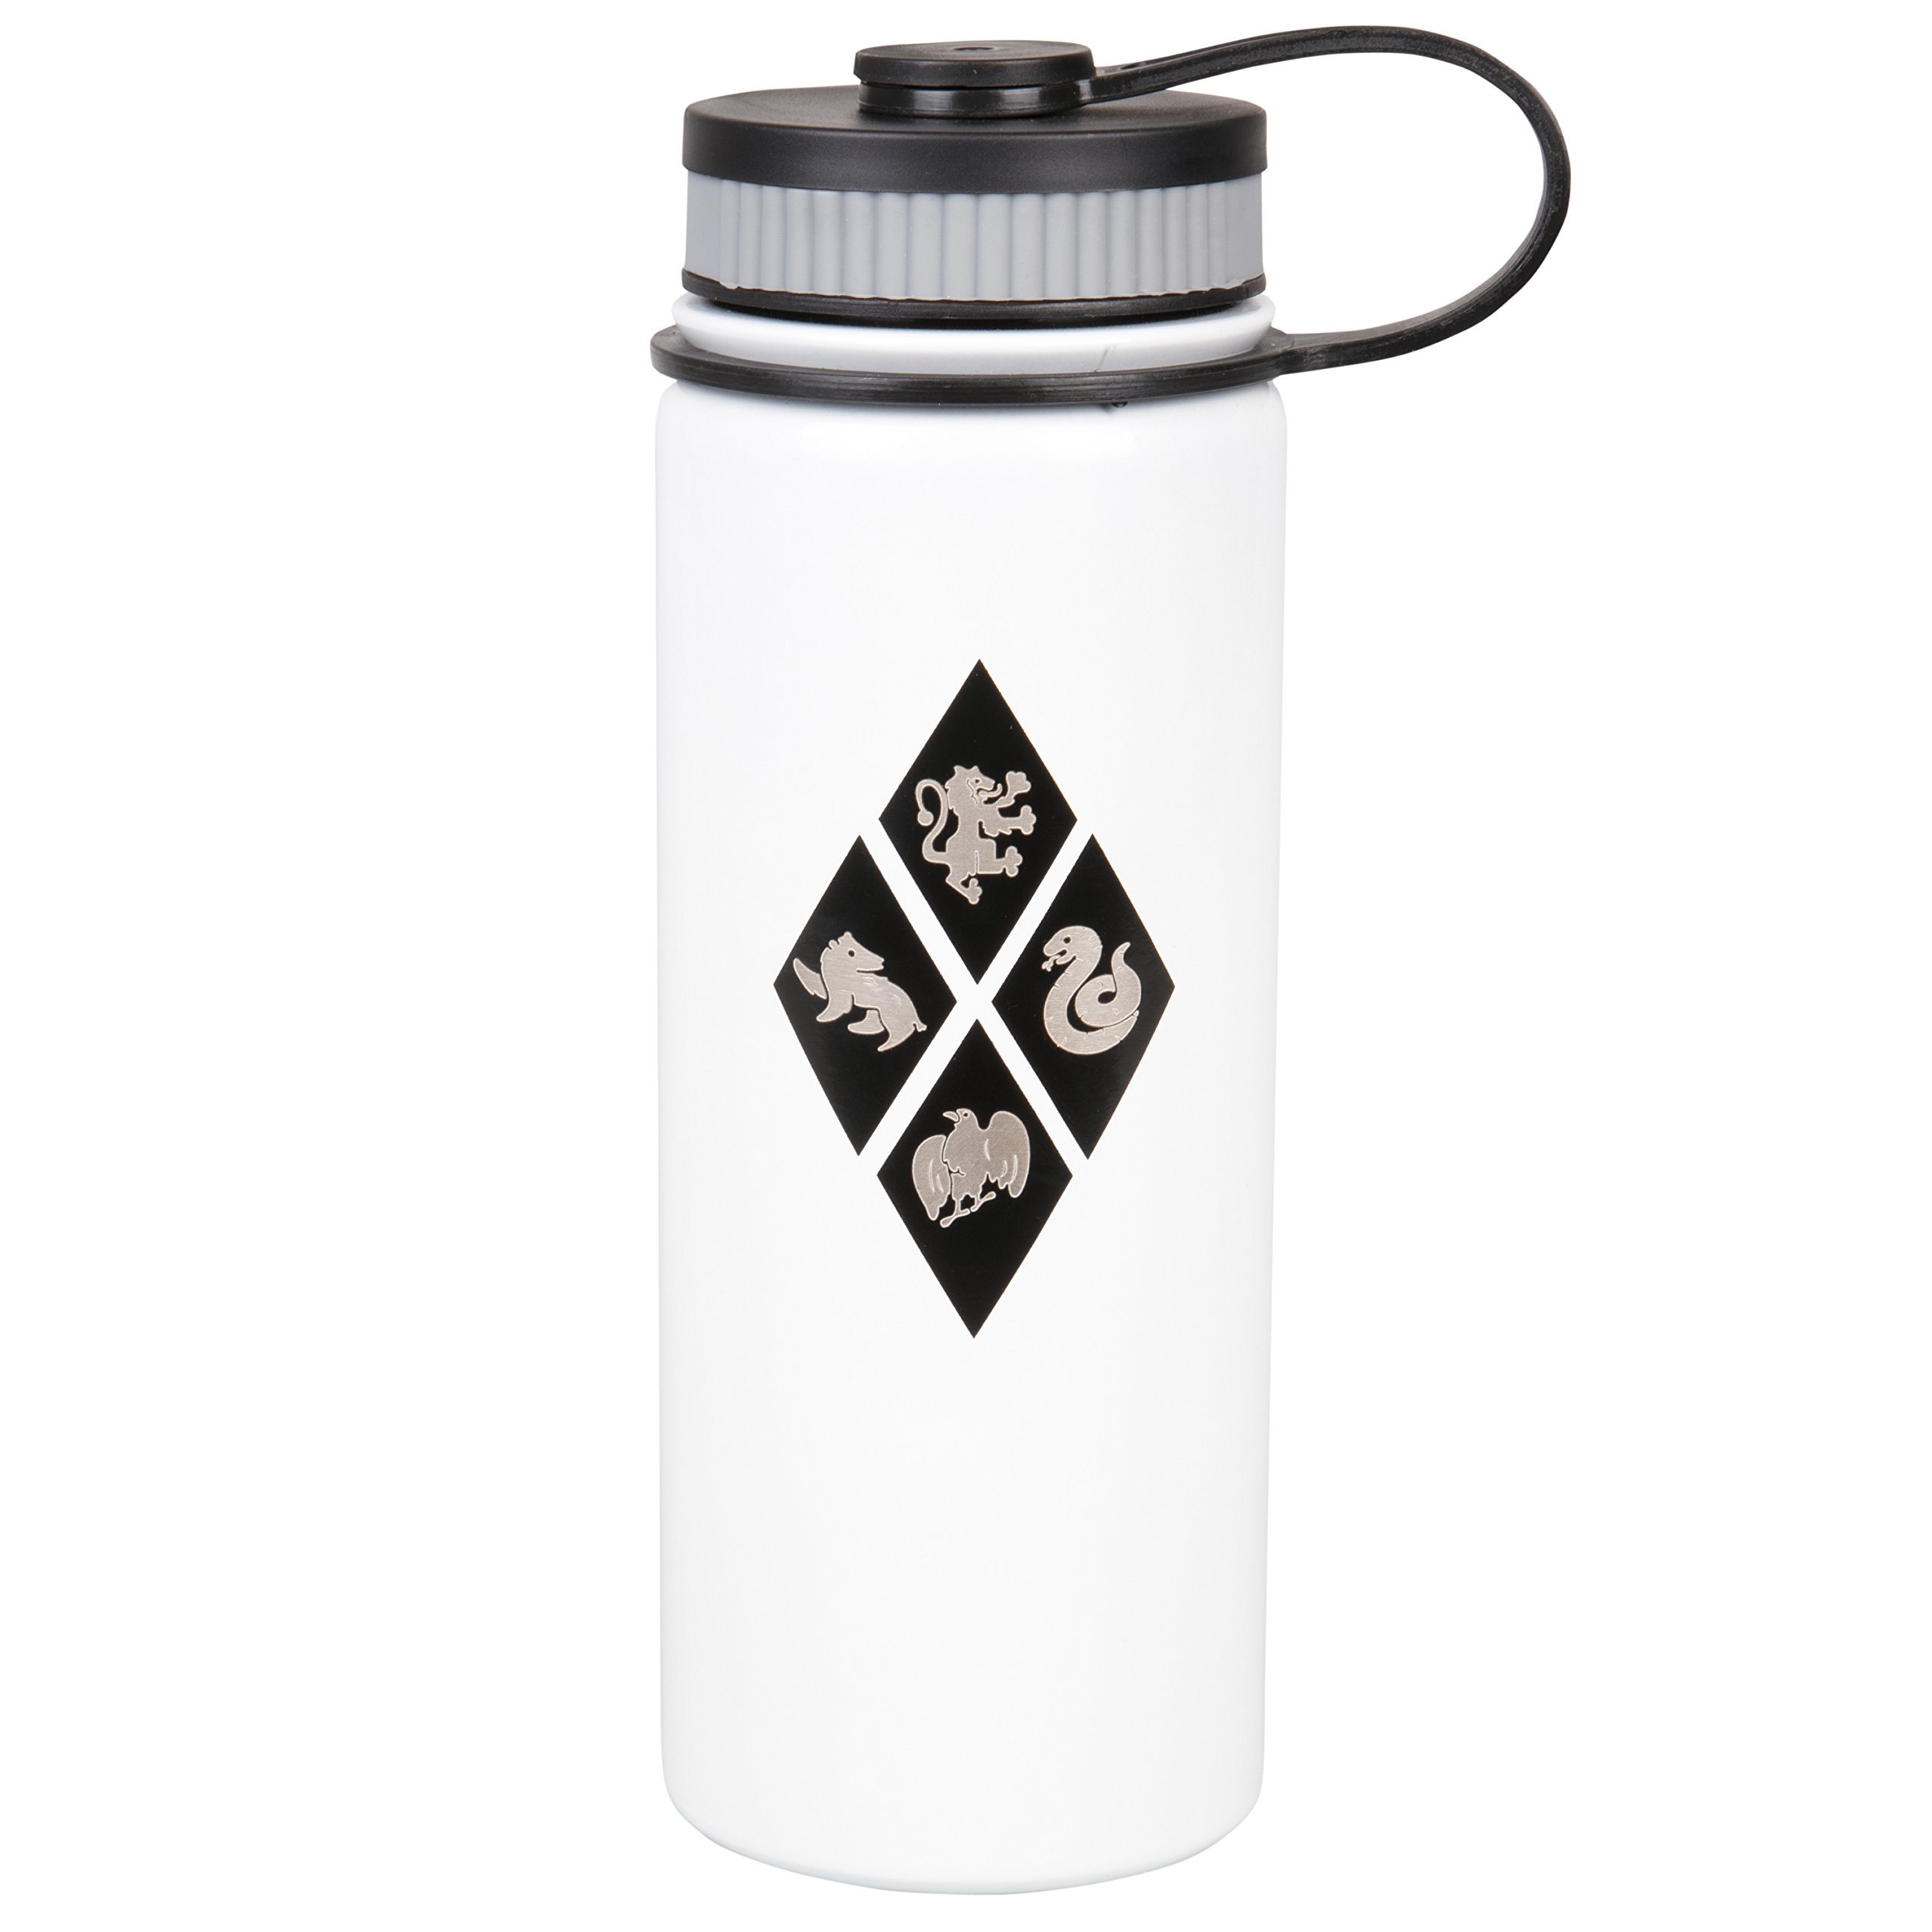 Harry Potter Stainless Steel Water Bottle - With Hogwarts House Crest Design - 550ml